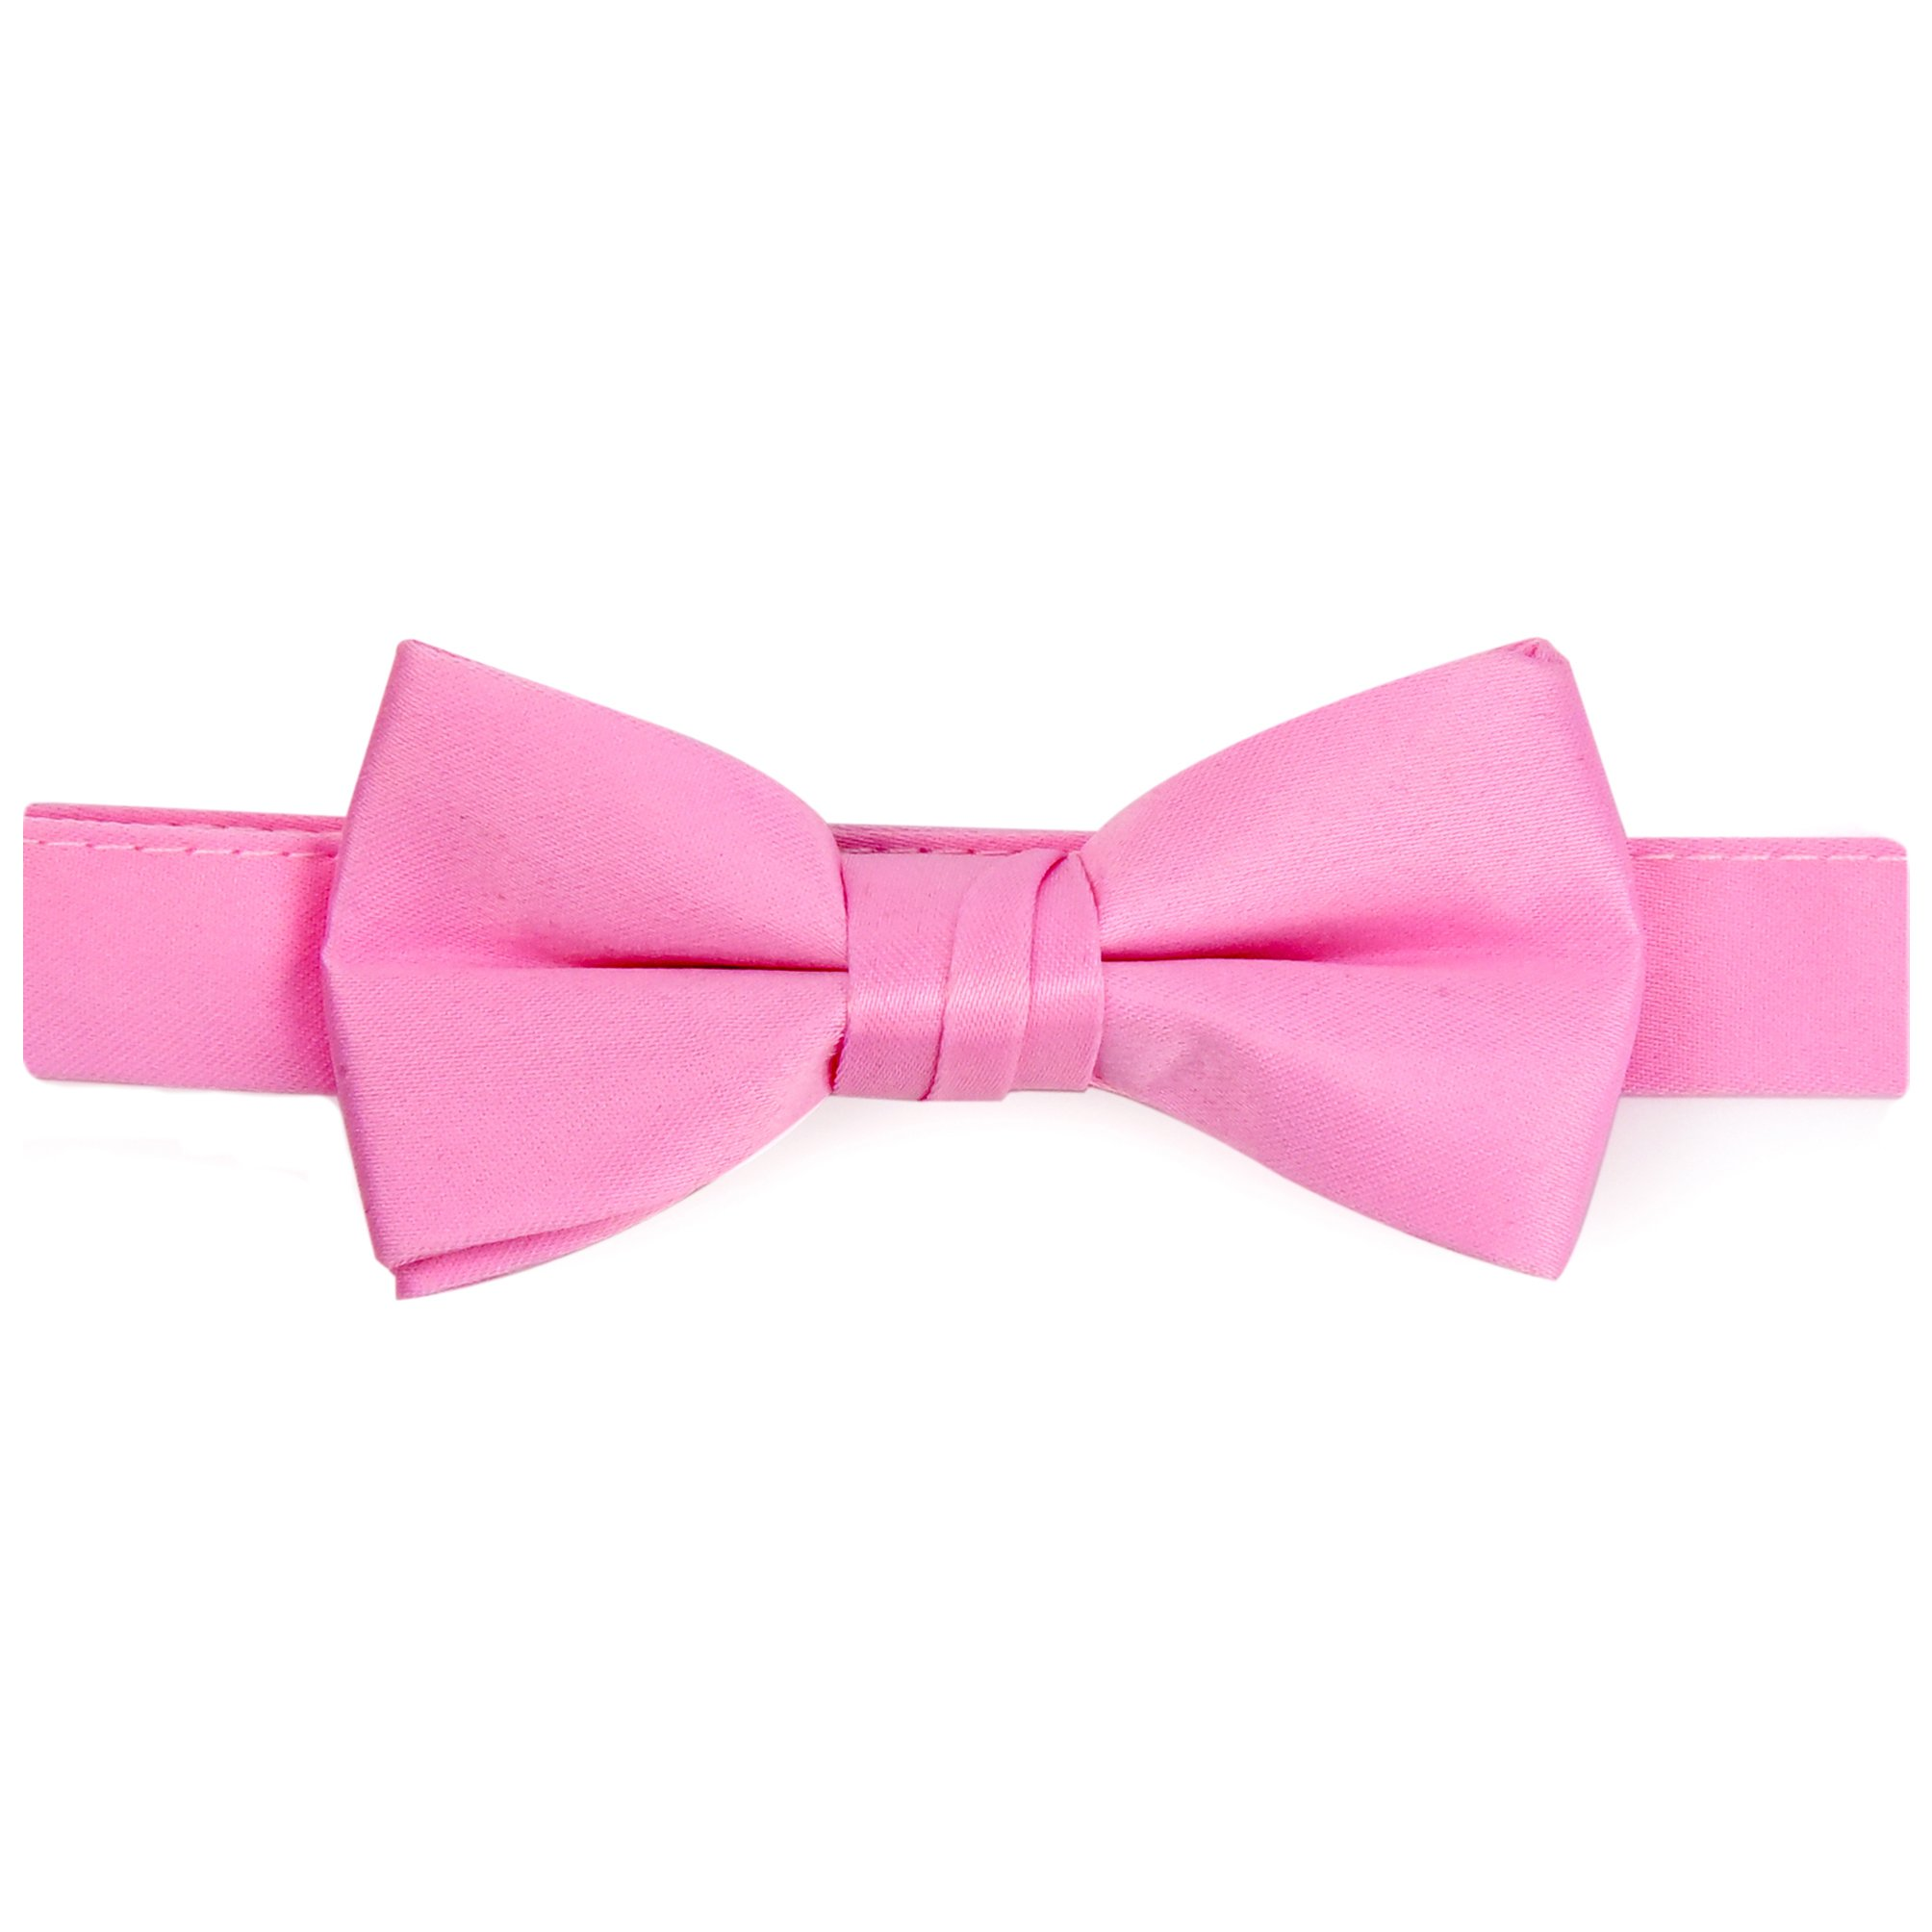 Hold'Em Bow Tie For Mens Boys and Baby Satin look Solid Color Adjustable Pre-tied Made in USA - Kids Light Pink